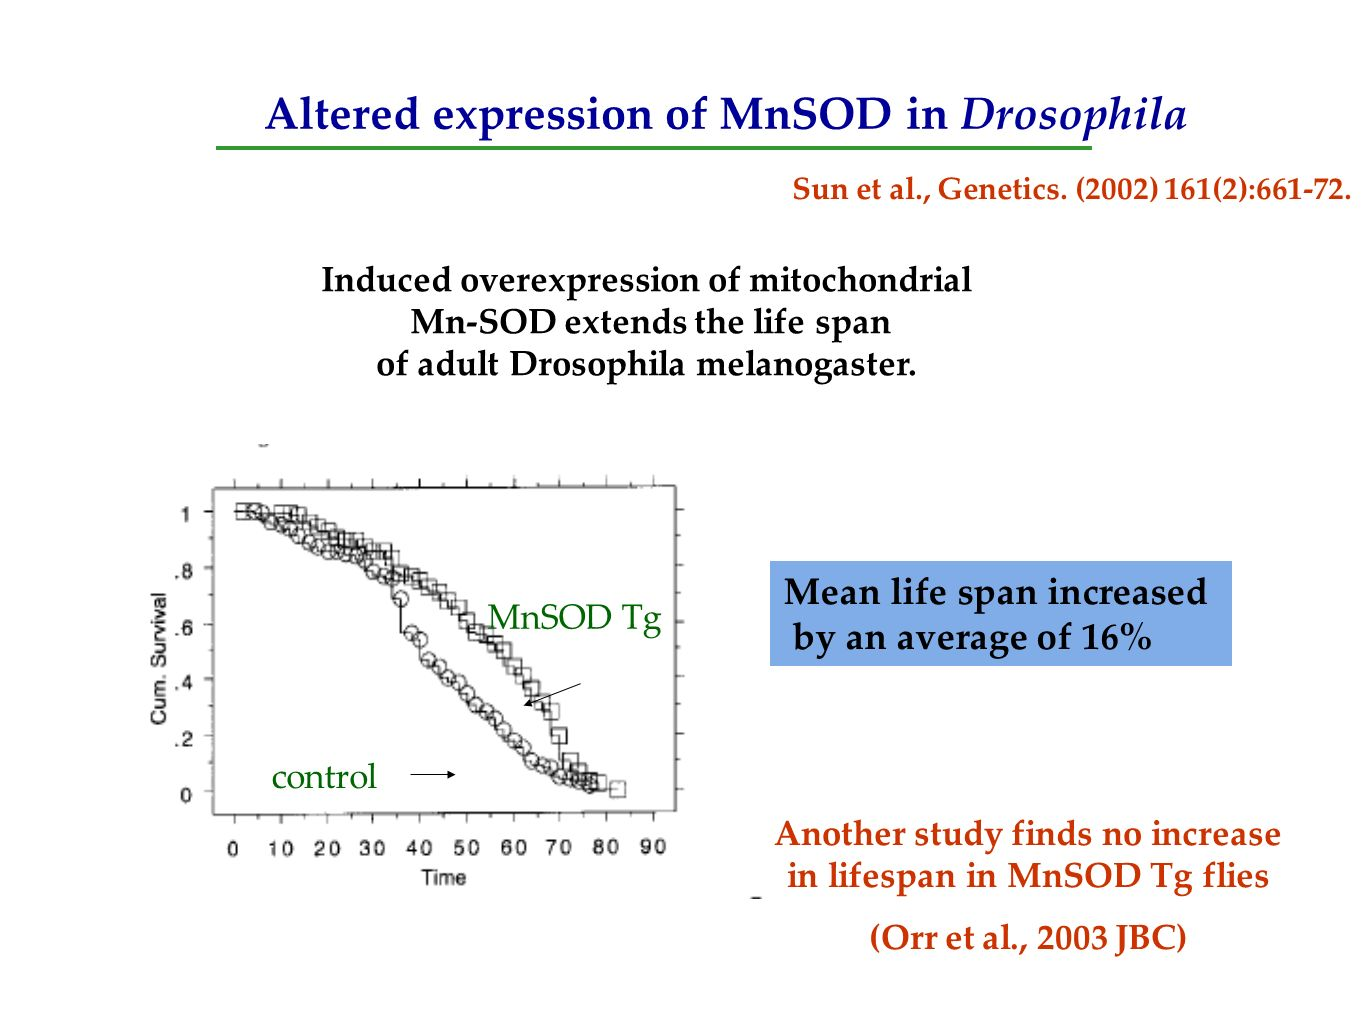 Altered expression of MnSOD in Drosophila Induced overexpression of mitochondrial Mn-SOD extends the life span of adult Drosophila melanogaster. Sun e